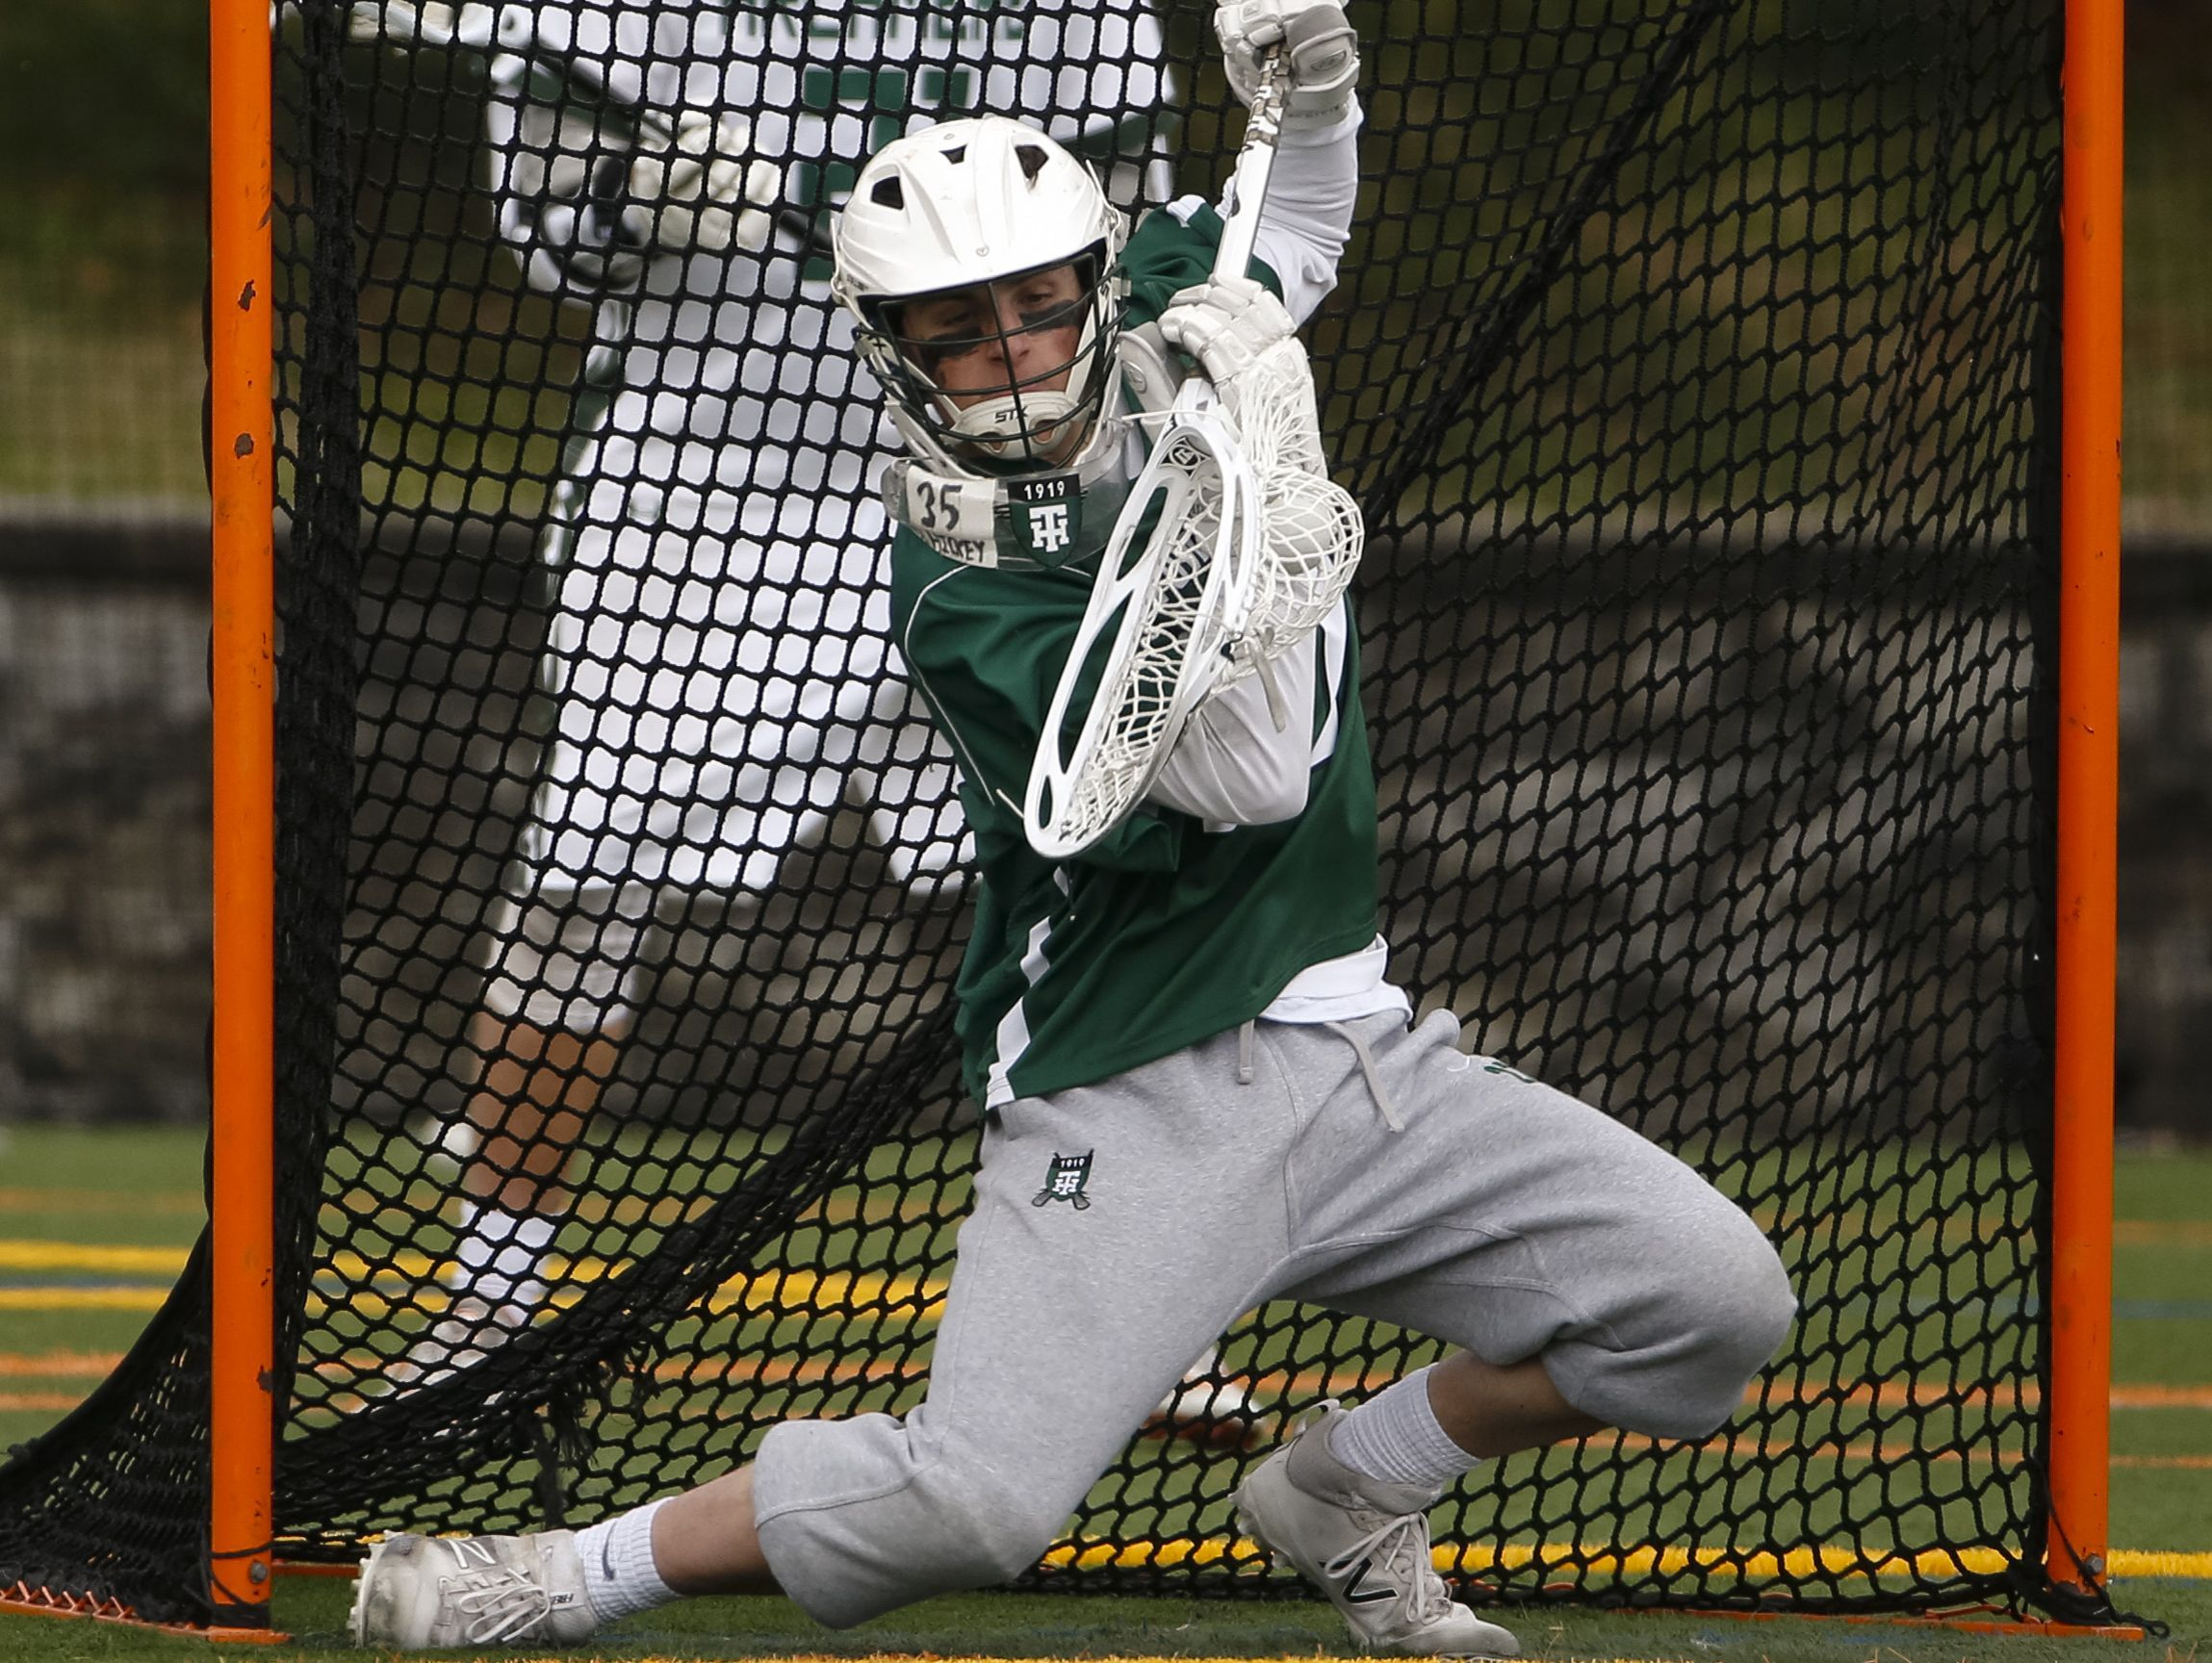 Tower Hill goalie Michael Gianforcaro makes a save in the second half of Archmere's 12-7 win Saturday.